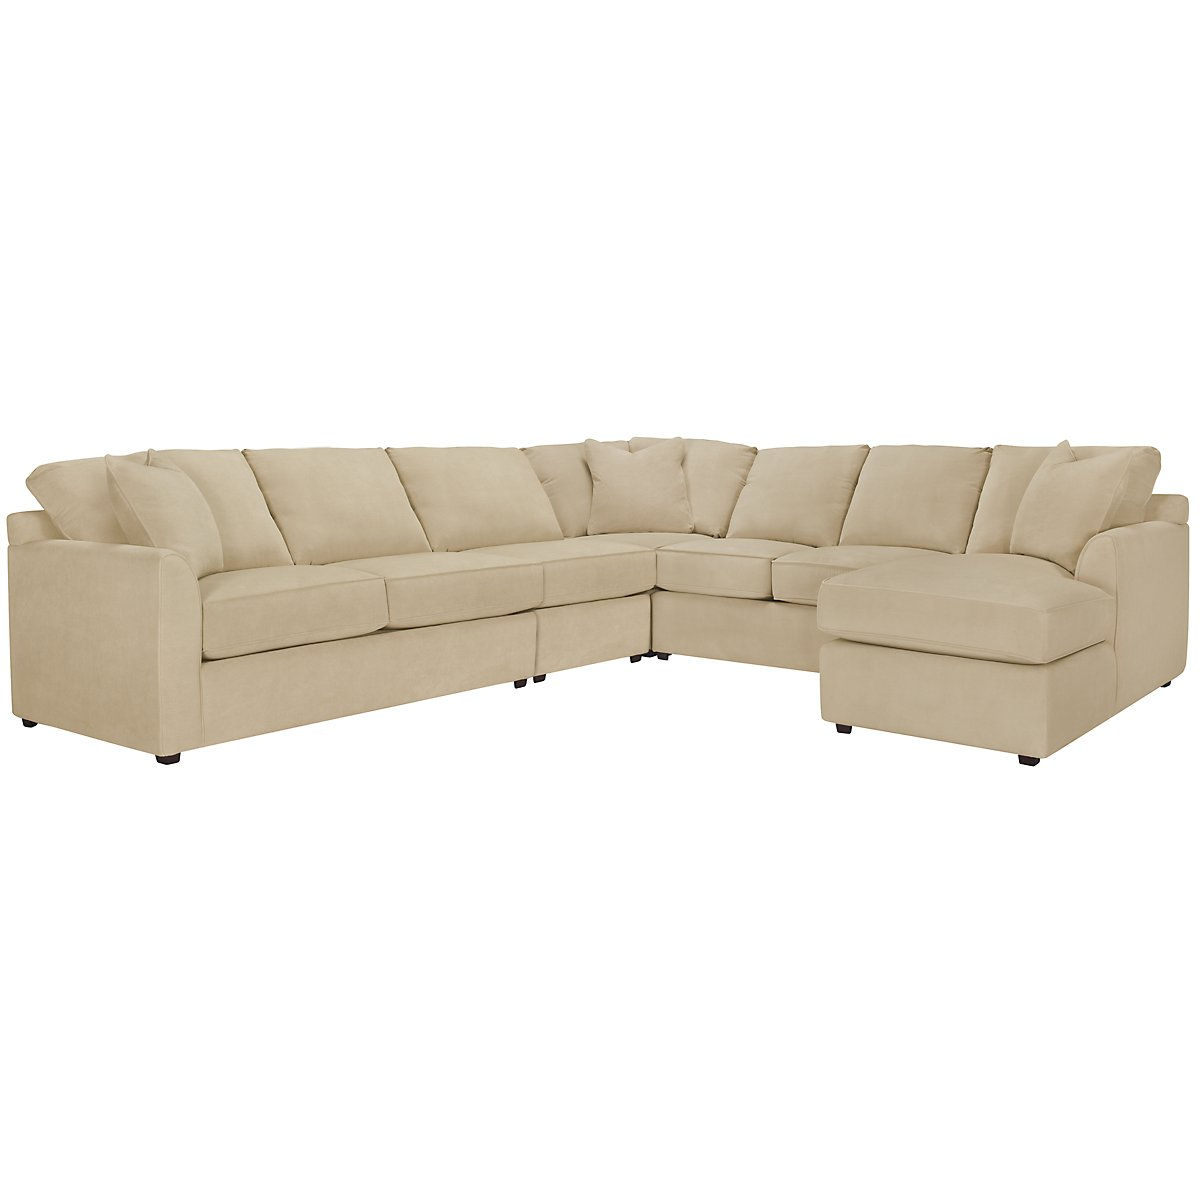 Express3 Light Beige Microfiber Large Right Chaise Sectional